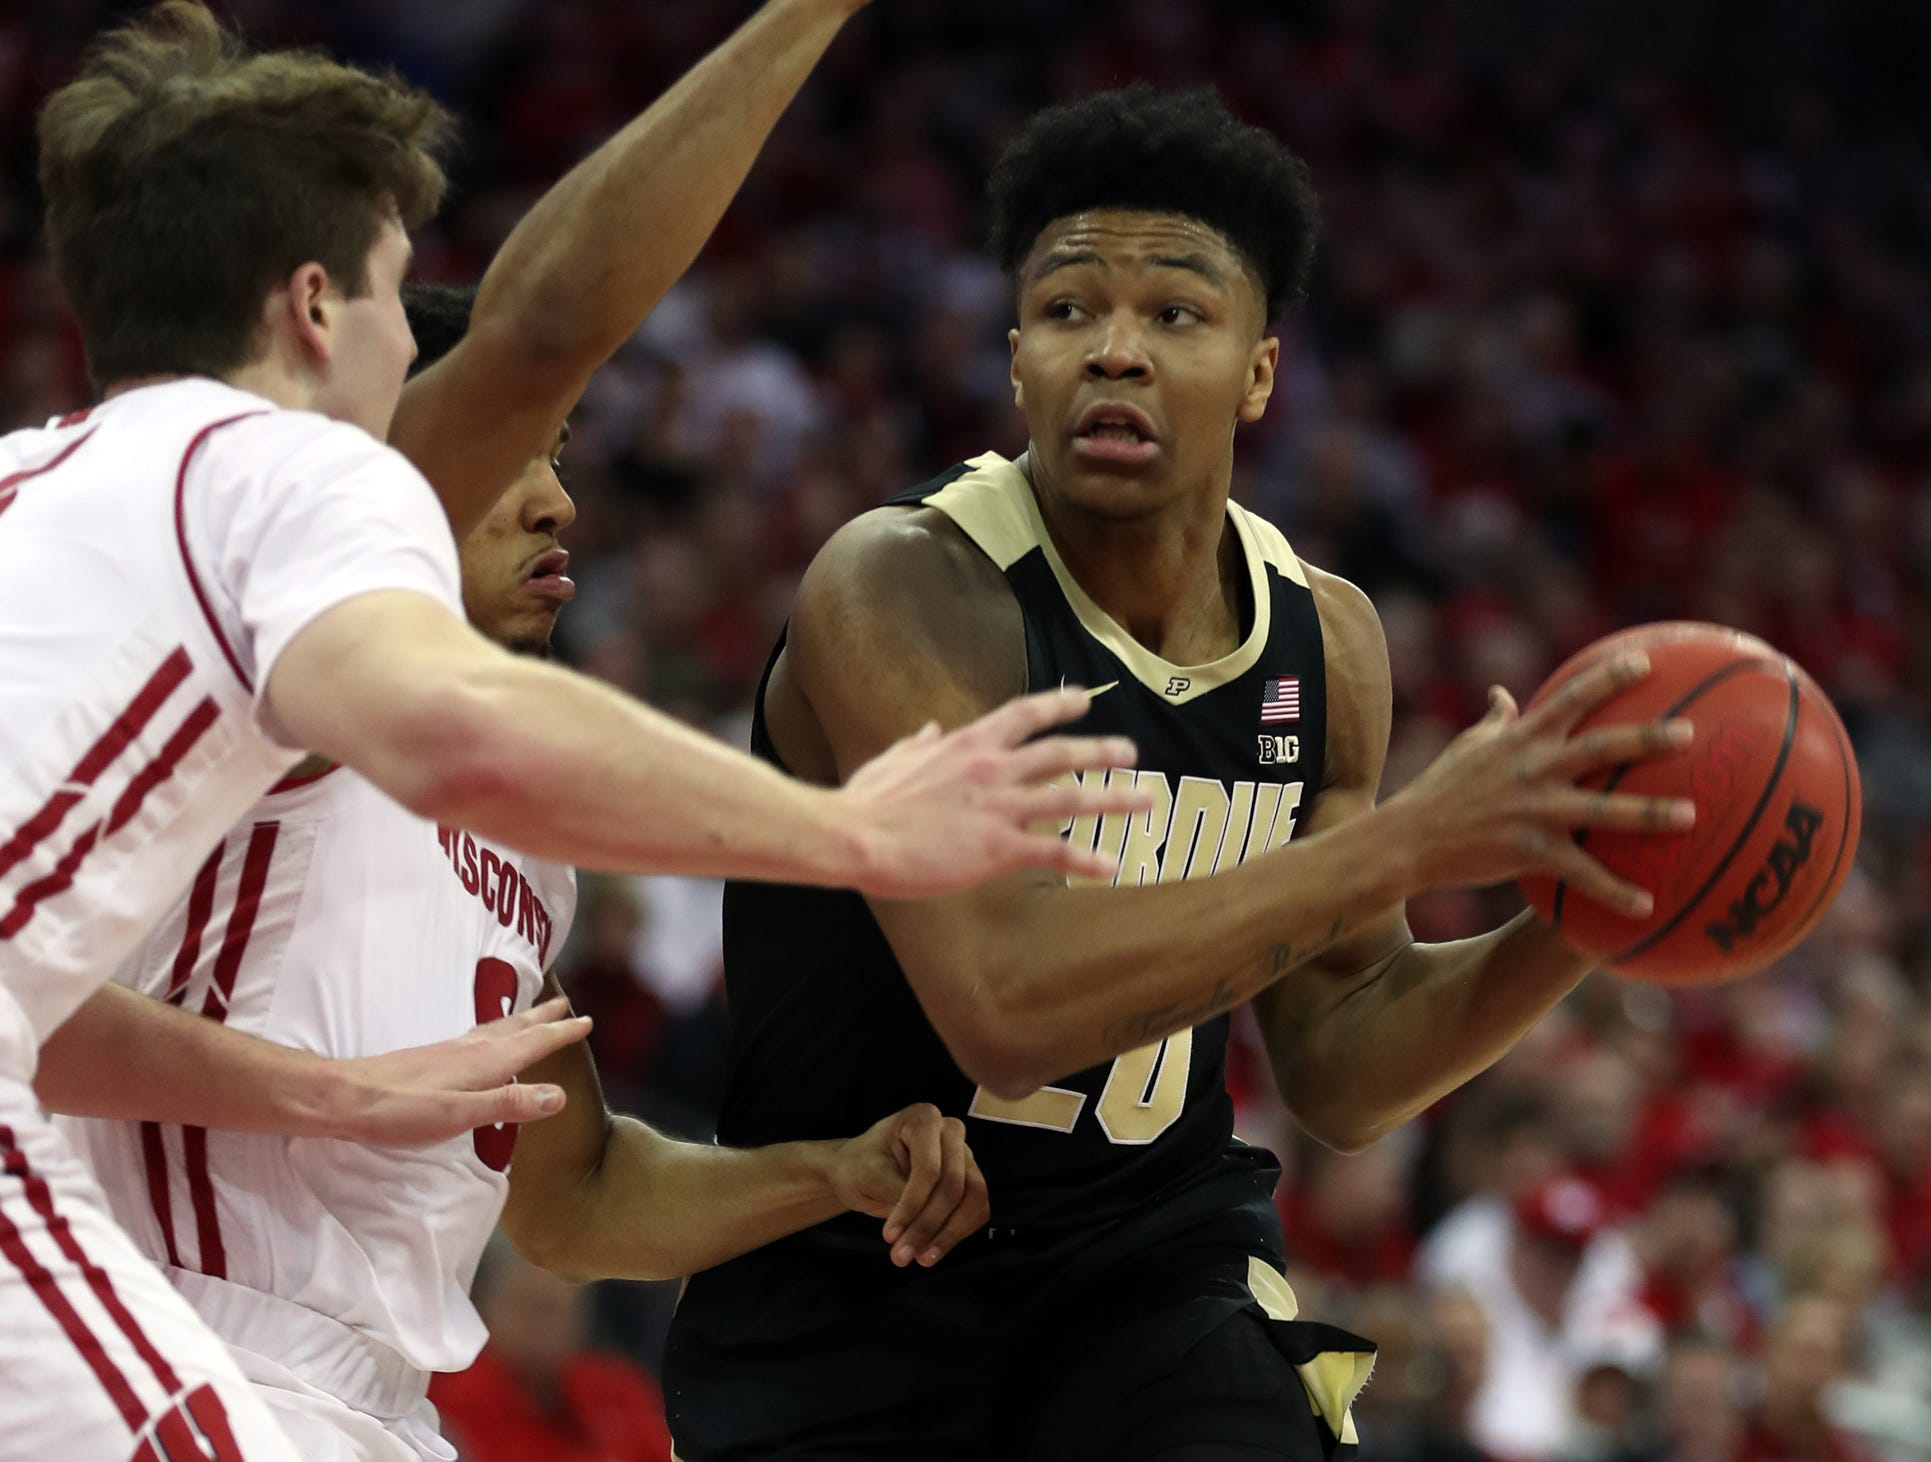 Jan 11, 2019; Madison, WI, USA; Purdue Boilermakers guard Nojel Eastern (20) looks to pass during the game with the Wisconsin Badgers during the first half at the Kohl Center. Mandatory Credit: Mary Langenfeld-USA TODAY Sports